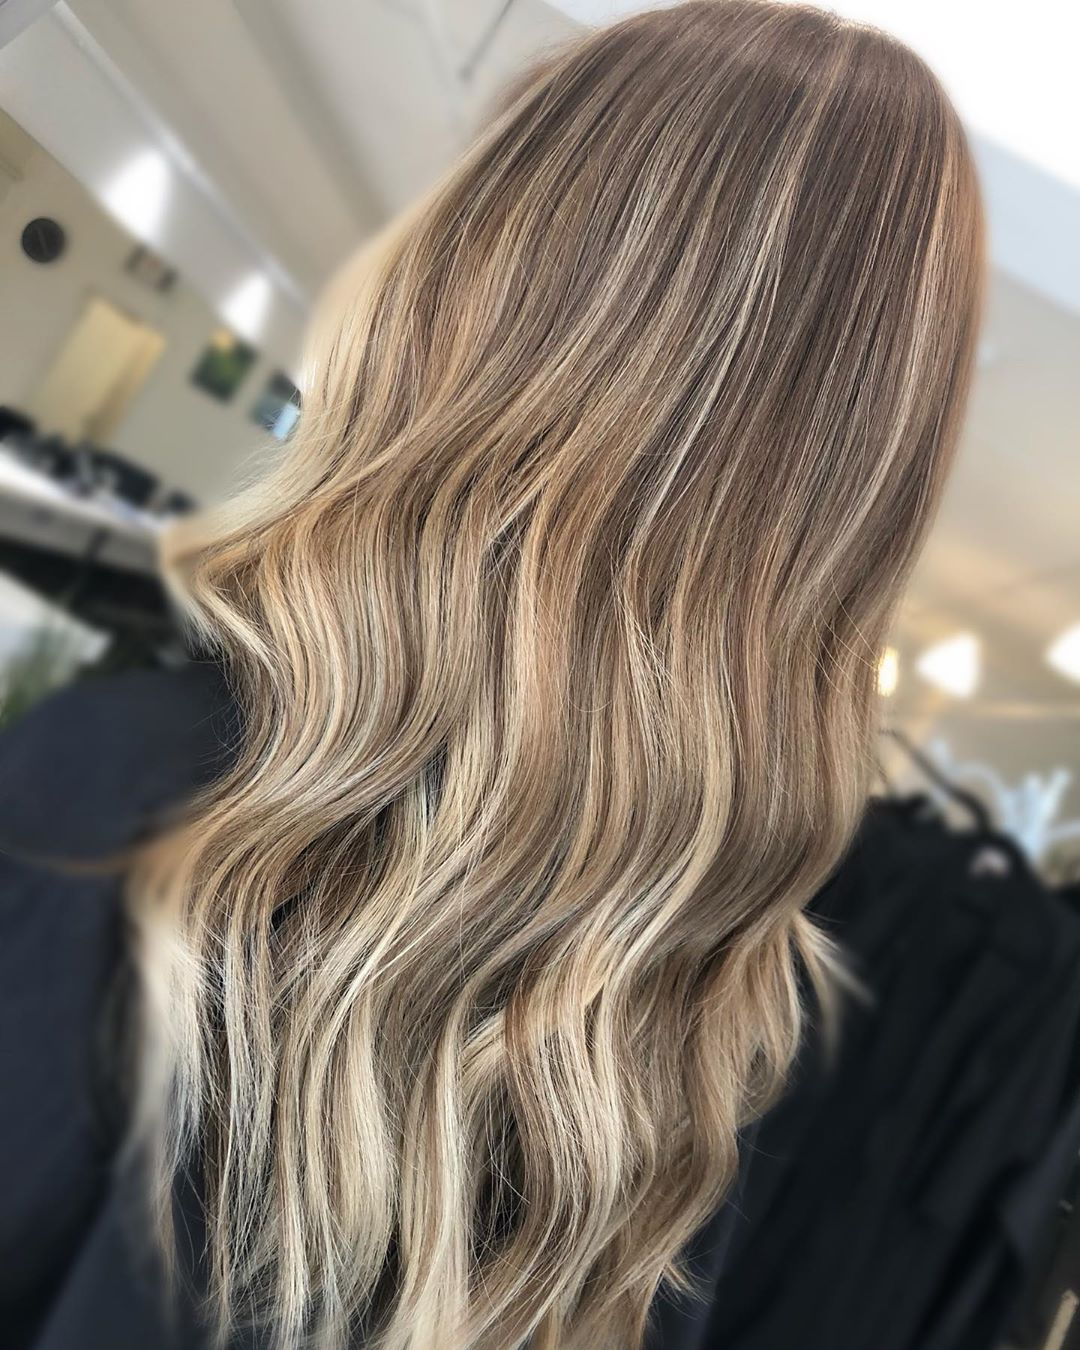 Steadman Co On Instagram After Before My Client Wanted To Get Rid Of The Brassy Colour Yet Not Go To Dark On The Base So W In 2020 Balayage